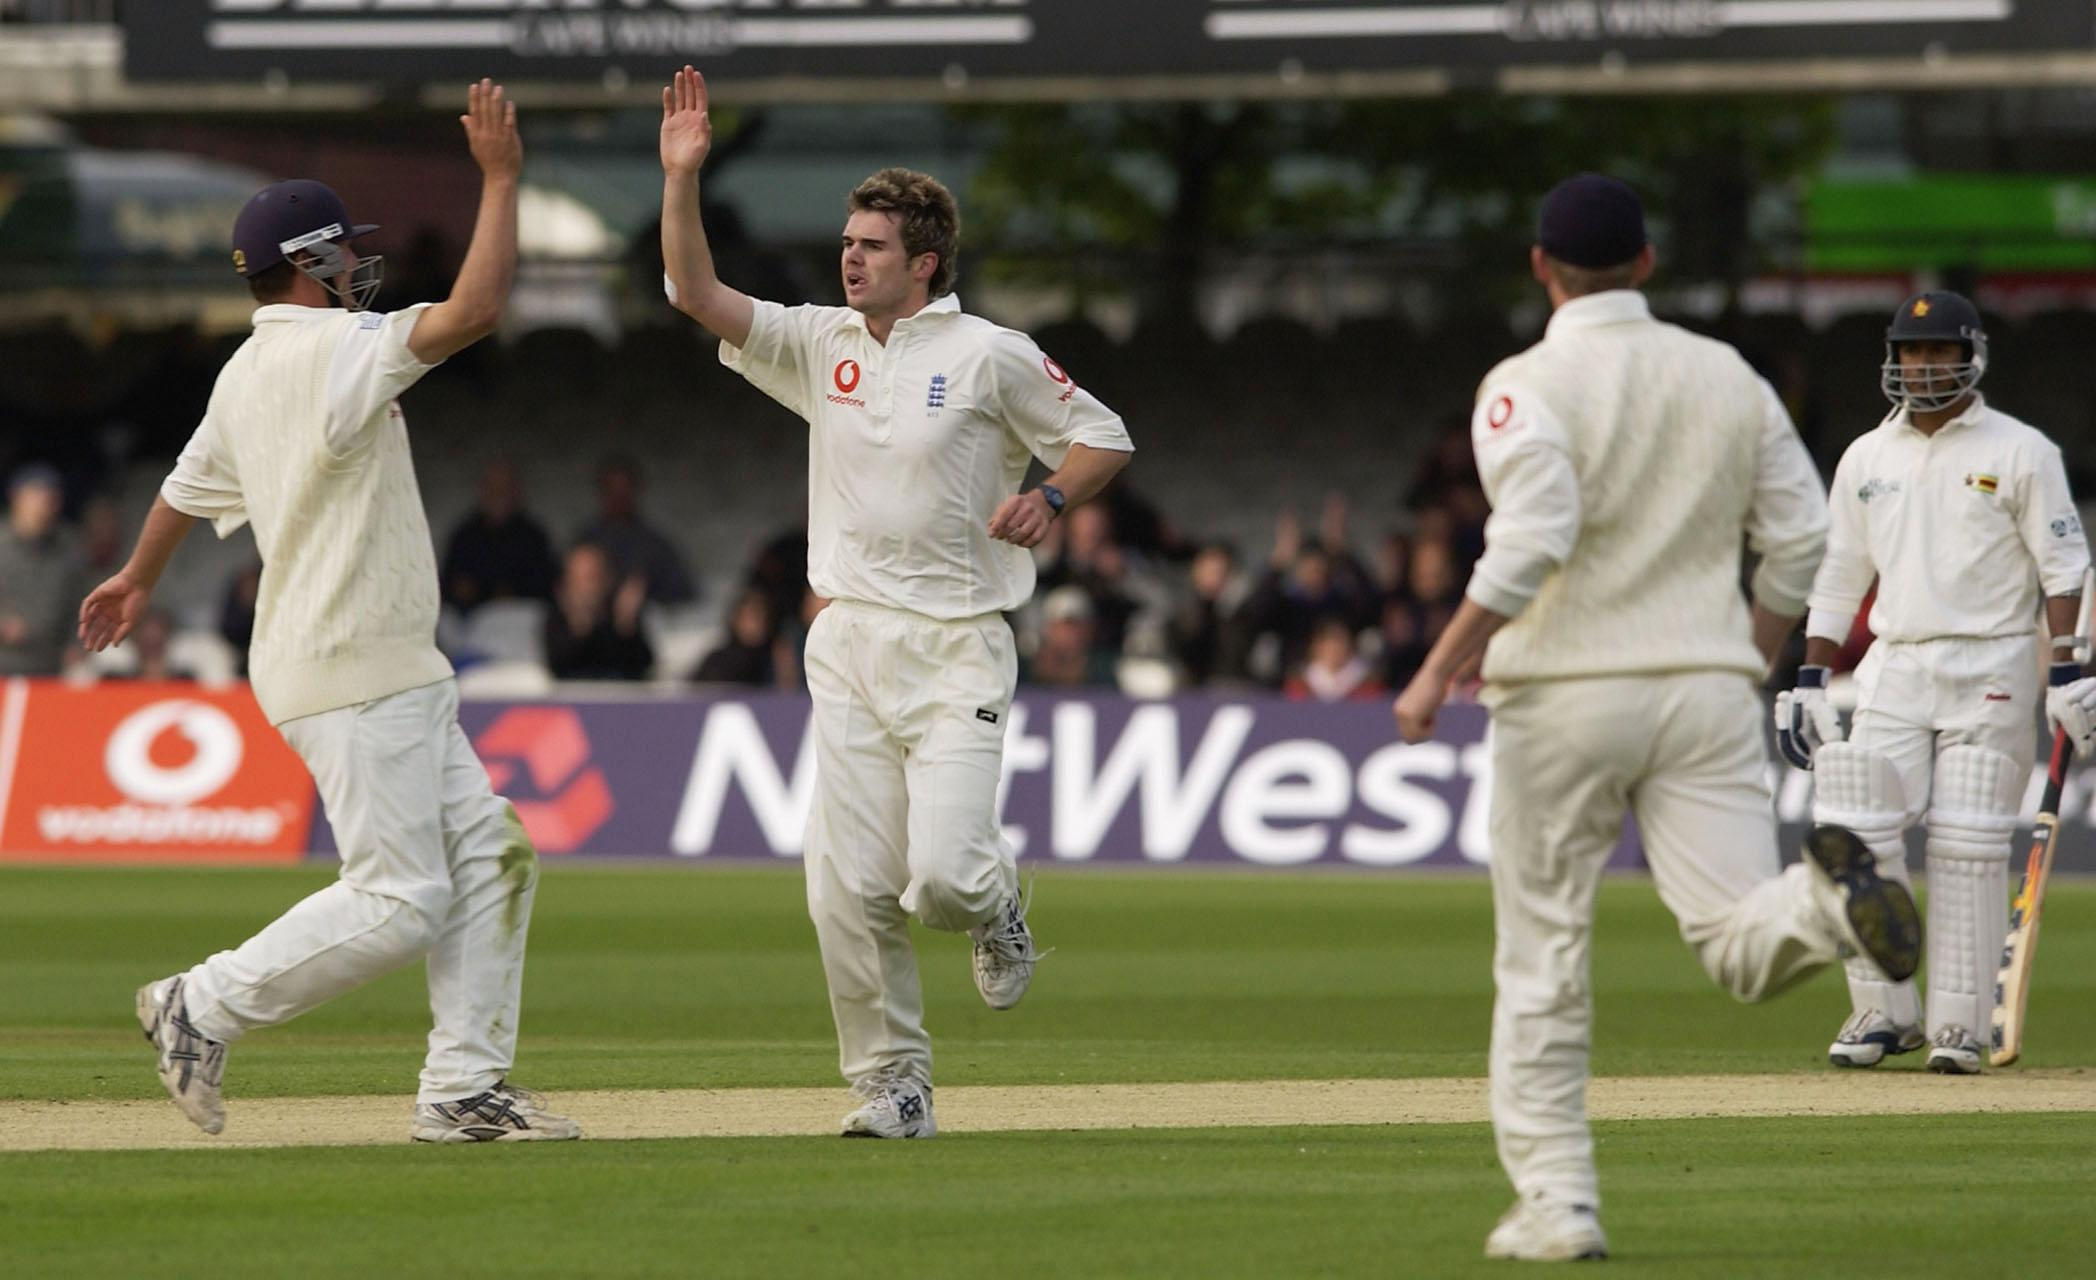 He took his first Test wickets with a five-fer in England's victory over Zimbabwe at Lord's in 2003